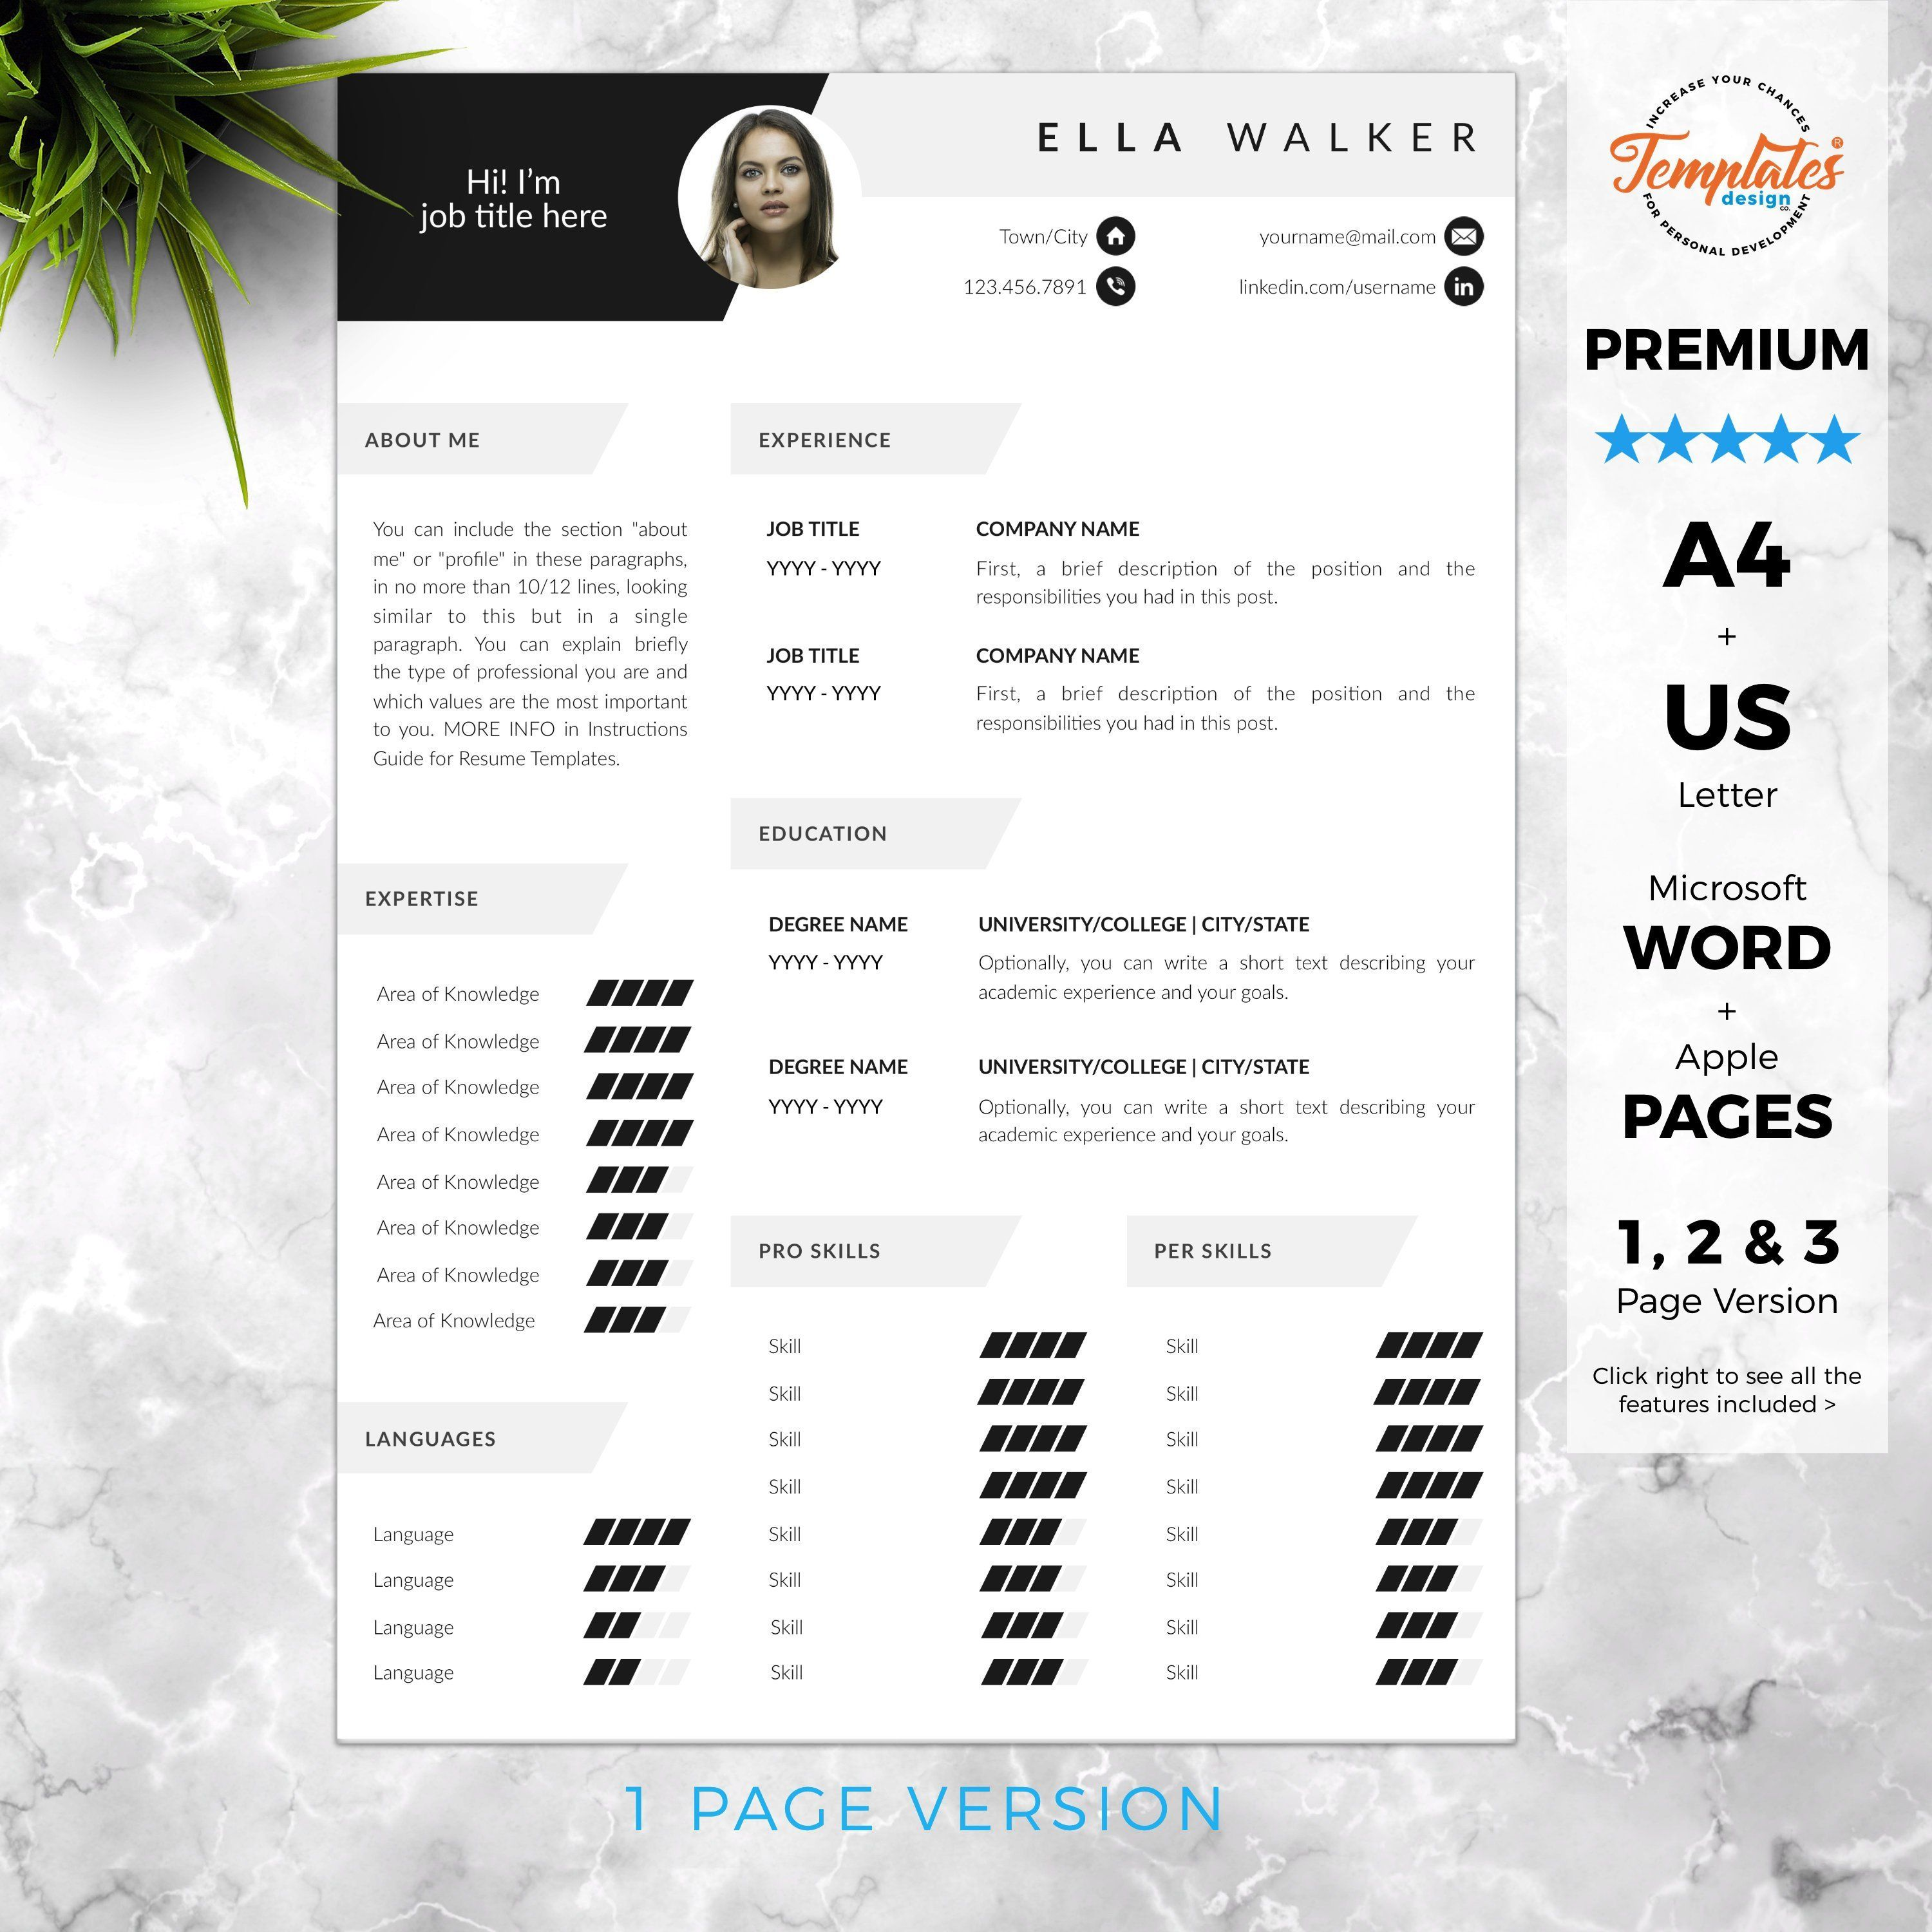 Creative Cv With Photo Cover Modern Resume Design For Word Pages Best Resume Template Etsy One Two And Three Page Resume Design Best Resume Template Resume Template Resume Template Etsy